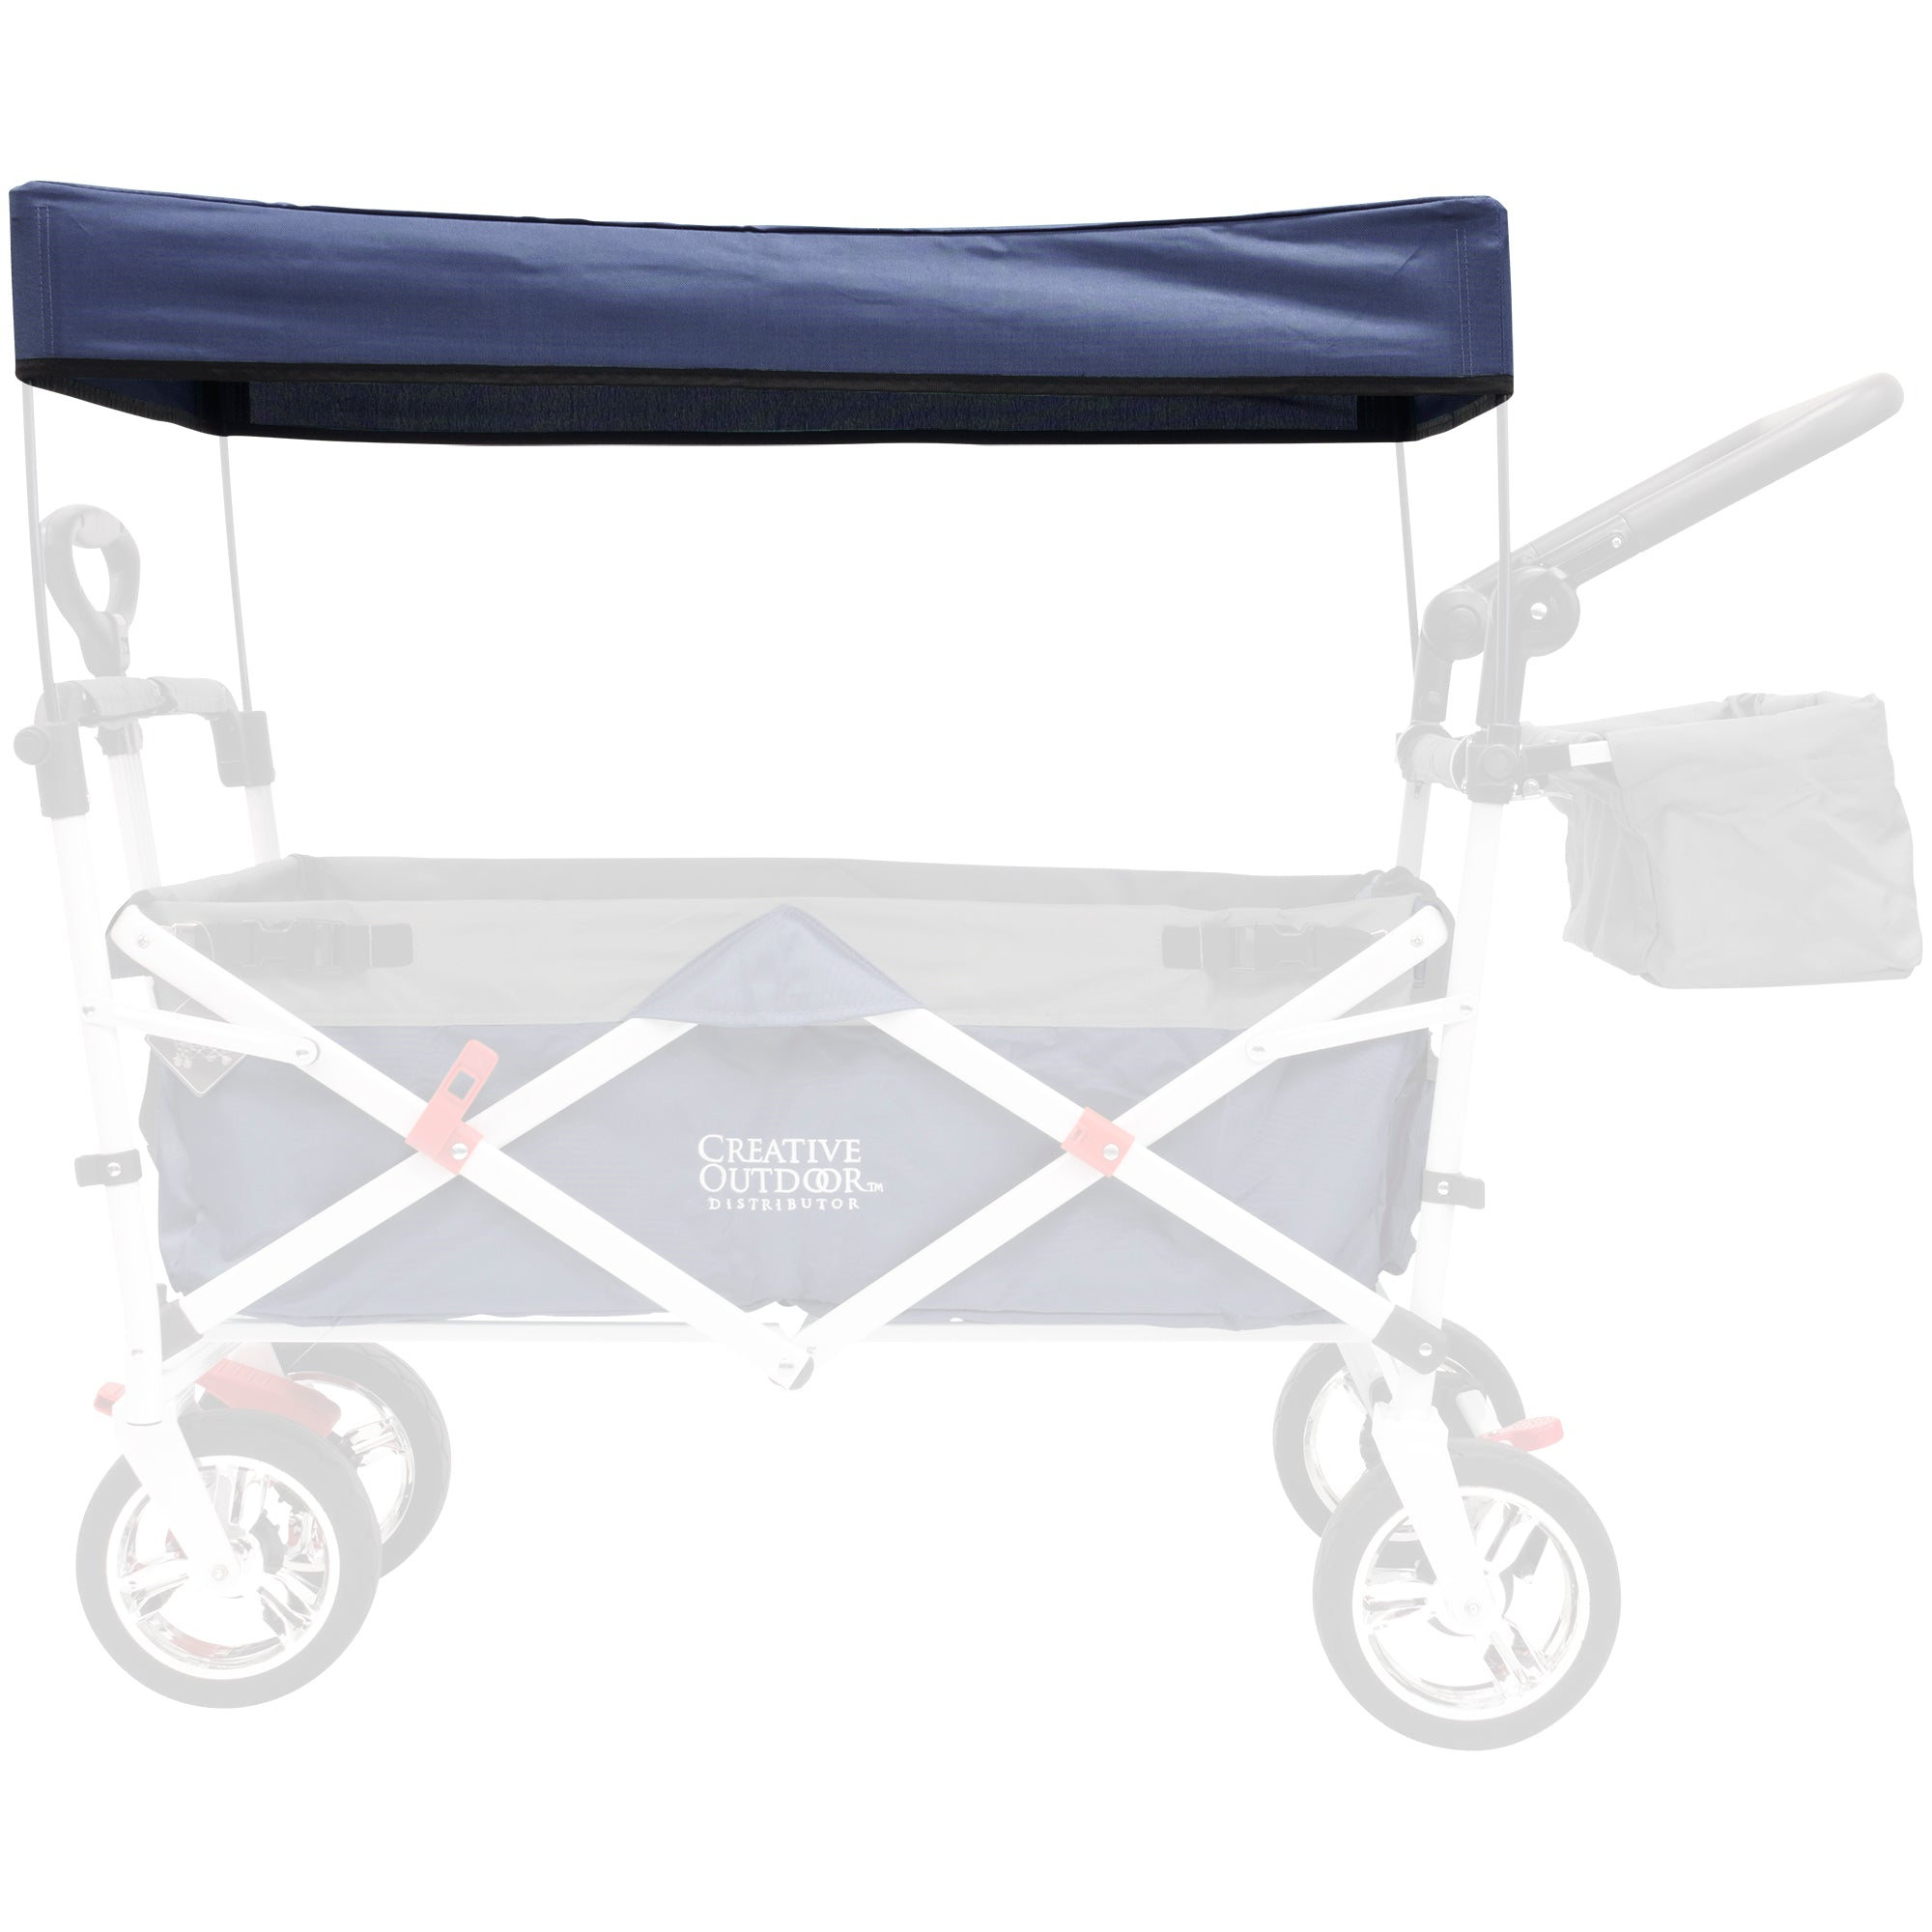 Silver Series Push Pull Folding Wagon Teal Replacement Canopy - Navy